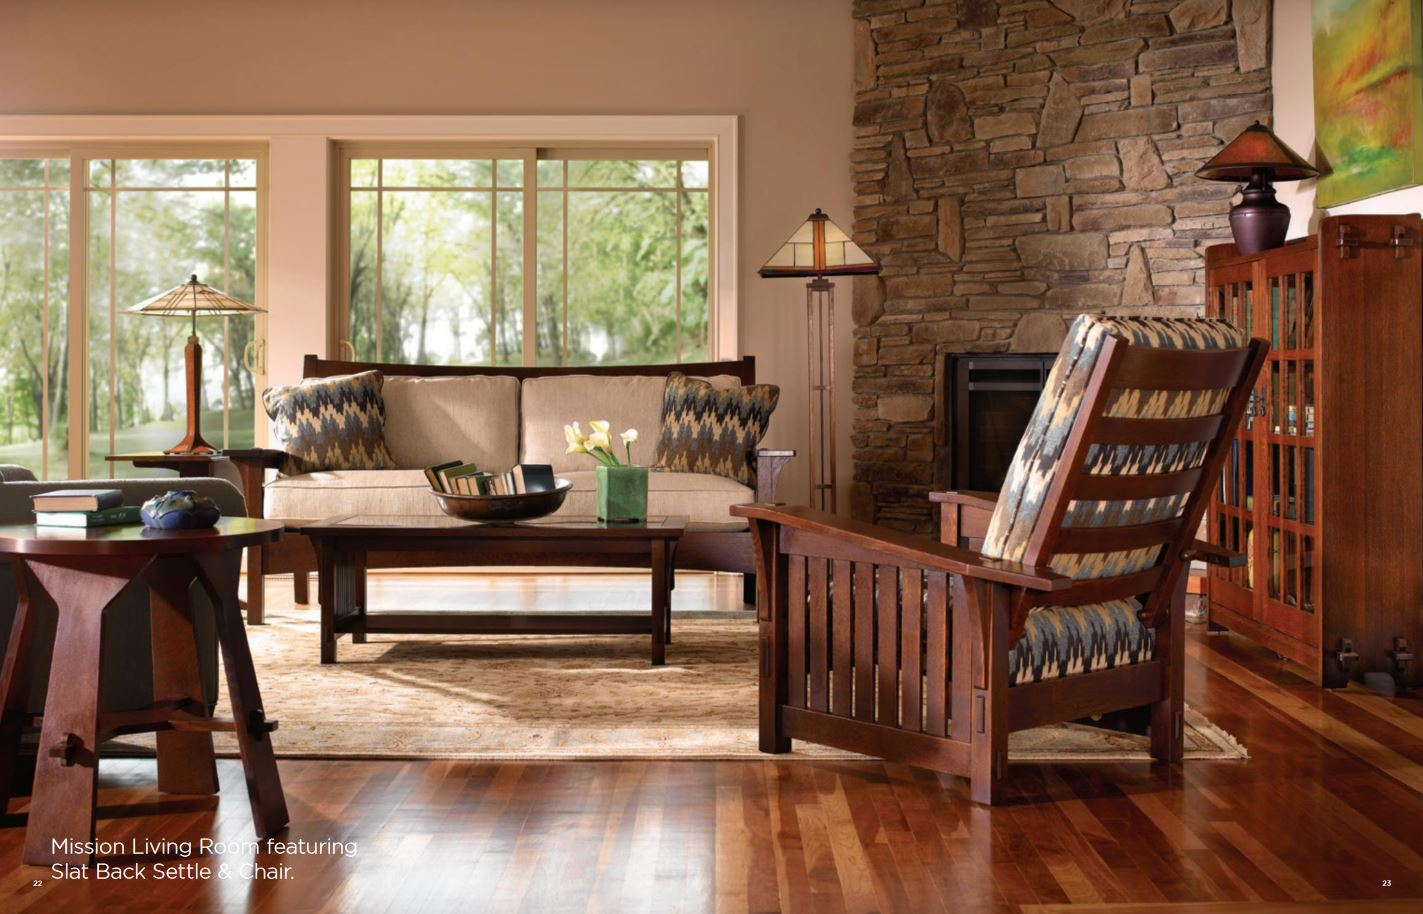 Mission furniture available at PTS Furniture Store  PTSfurniture.com